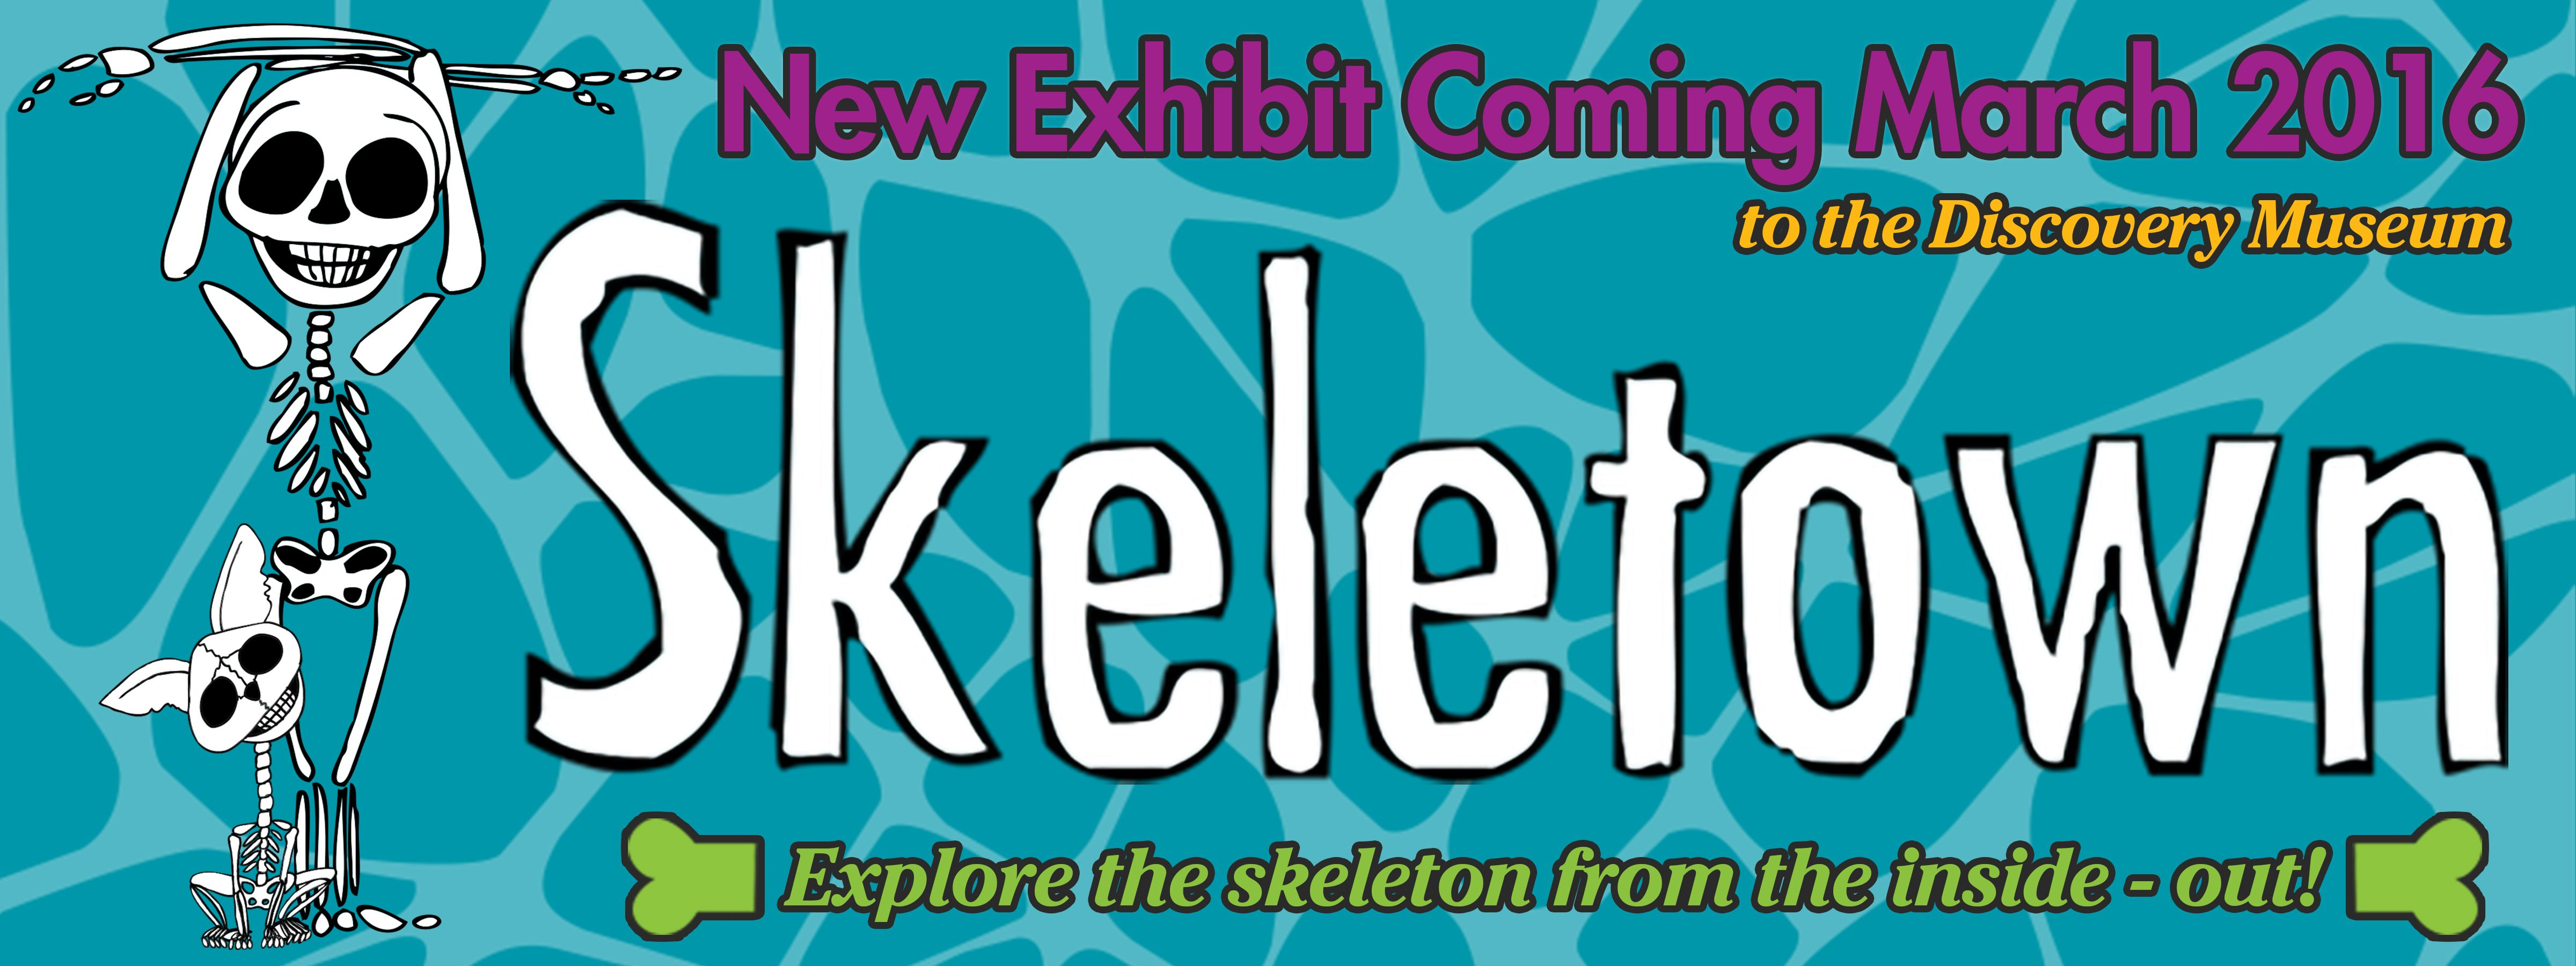 skeletown coming to the discovery museum march 5 discovery